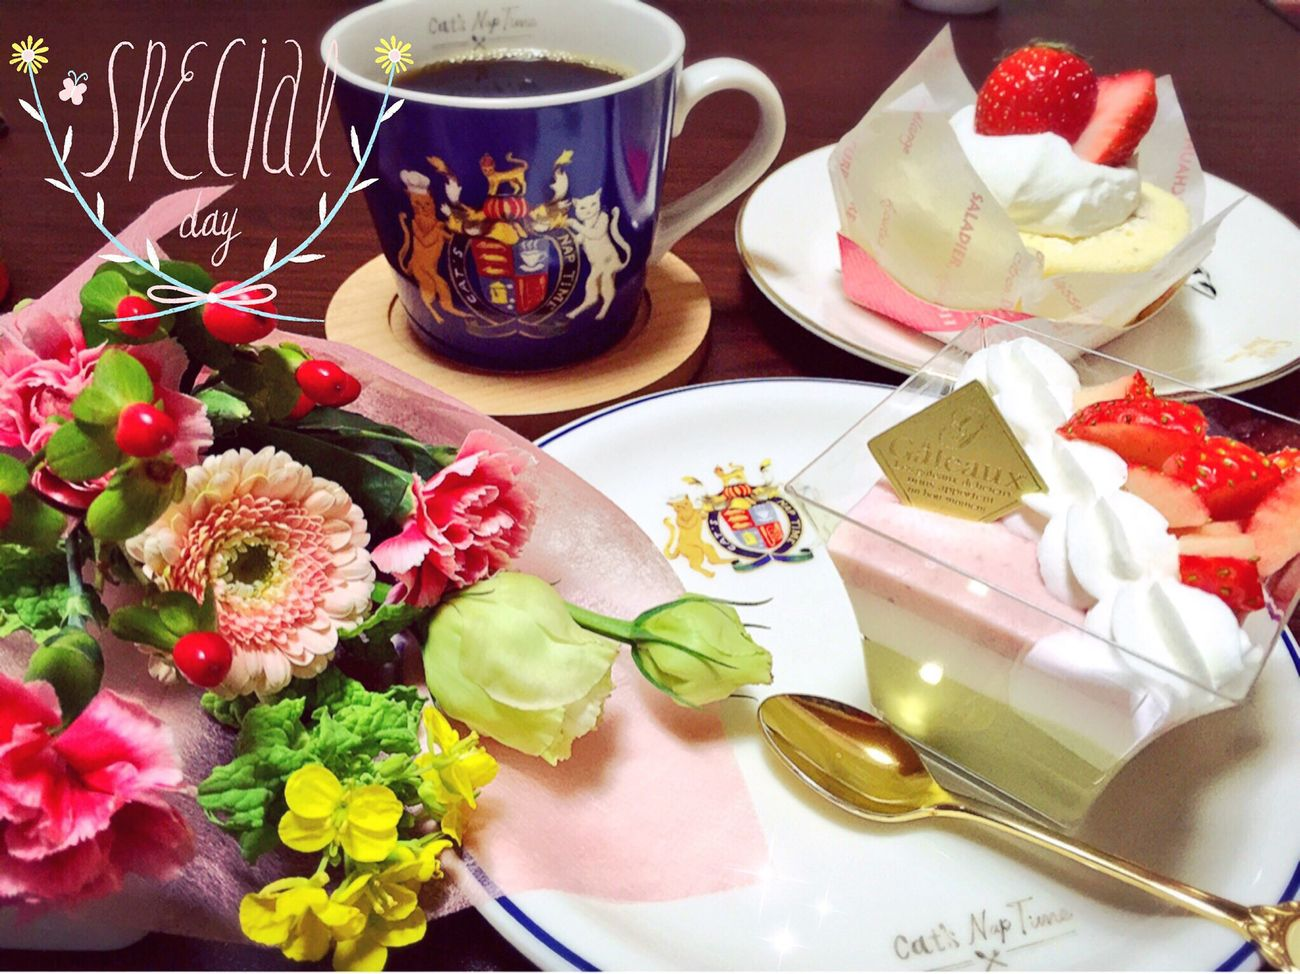 Flowers Flower Cakes Cake Strawberry Cake Strawberries Strawberry Coffee Coffee Time スイーツ ケーキ コーヒー